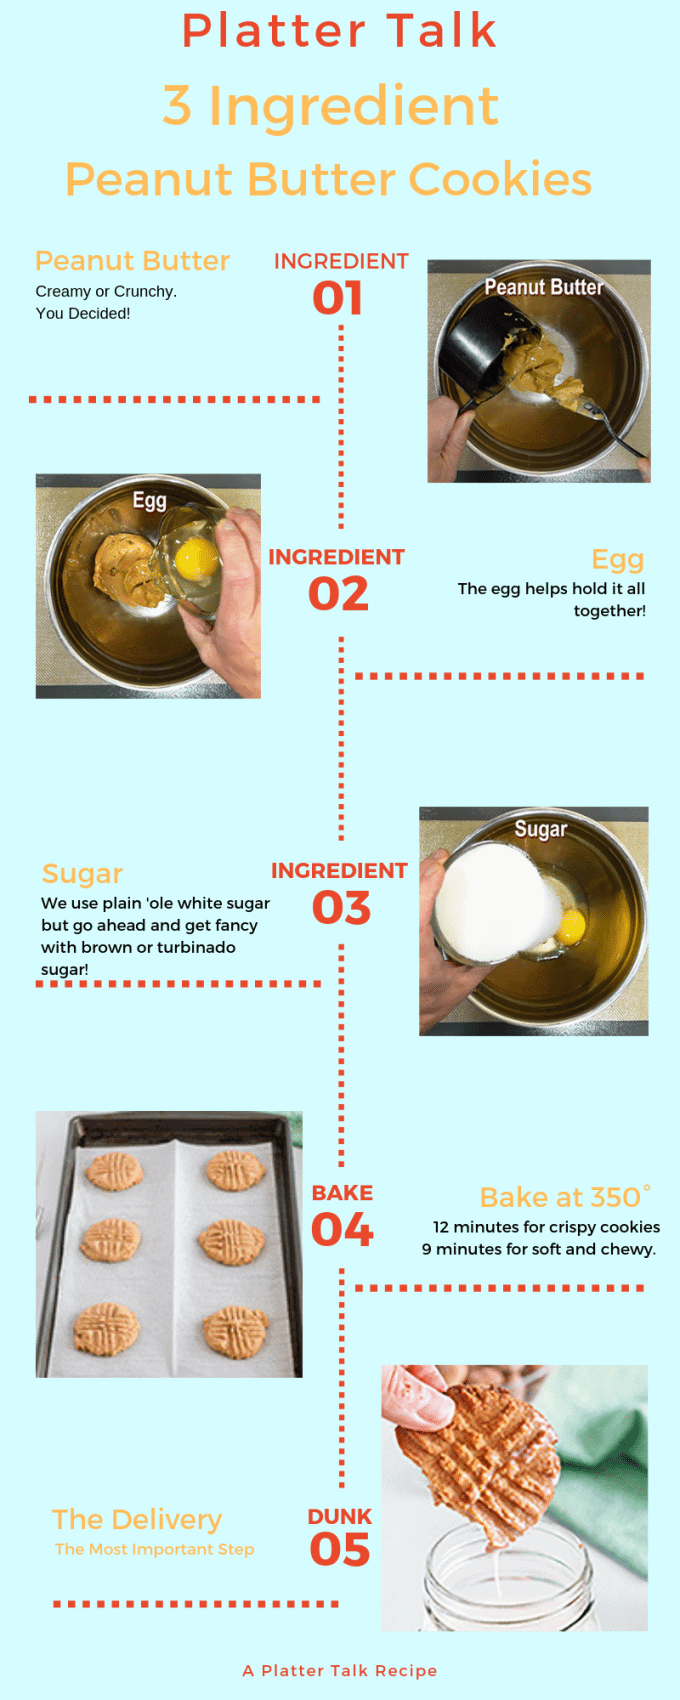 Summary of 3 Ingredient Peanut Butter Cookies.